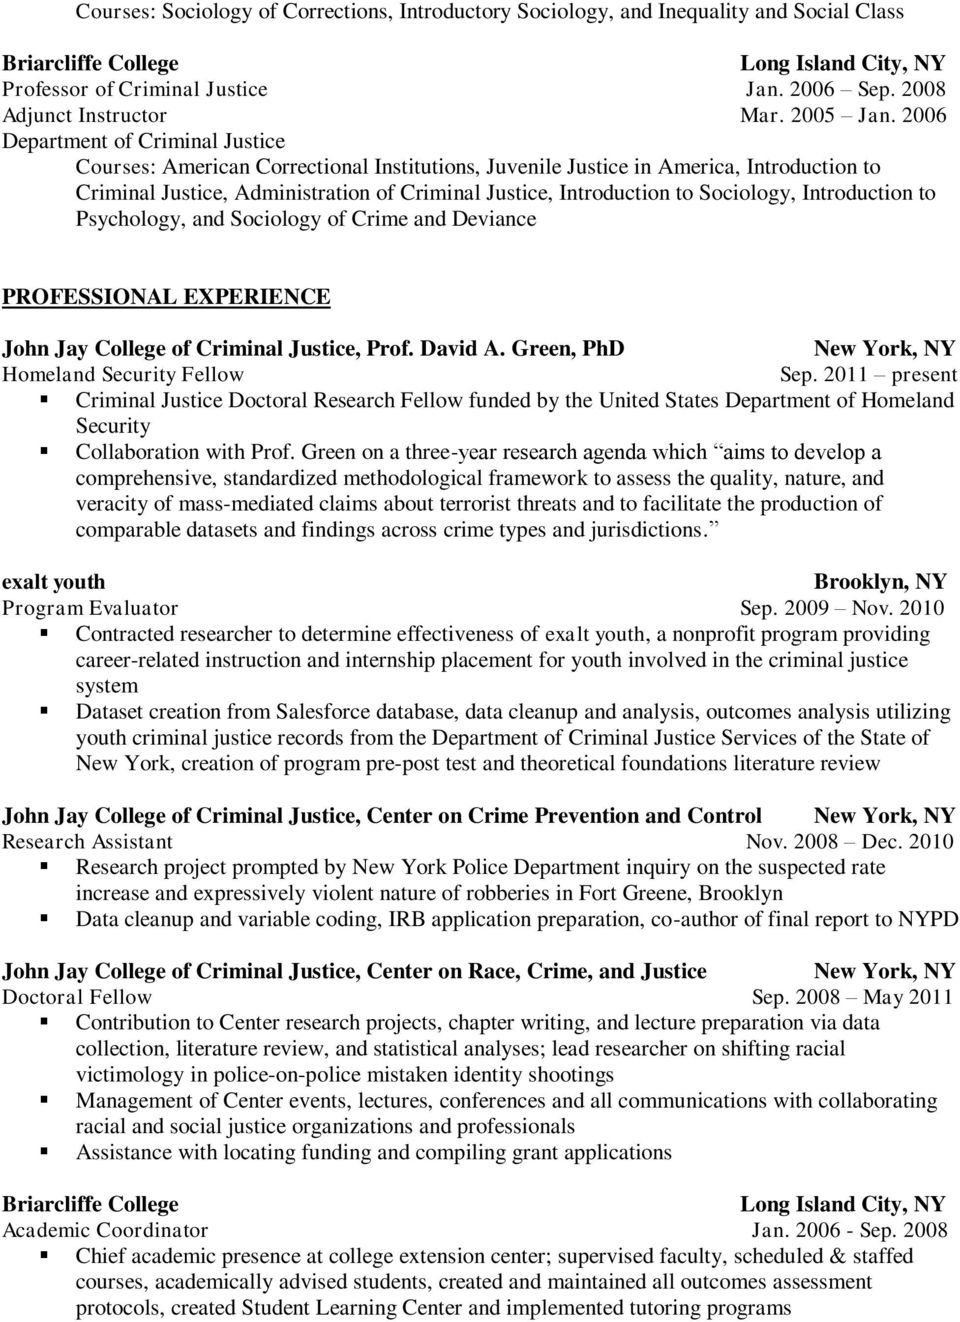 2006 Department of Criminal Justice Courses: American Correctional Institutions, Juvenile Justice in America, Introduction to Criminal Justice, Administration of Criminal Justice, Introduction to